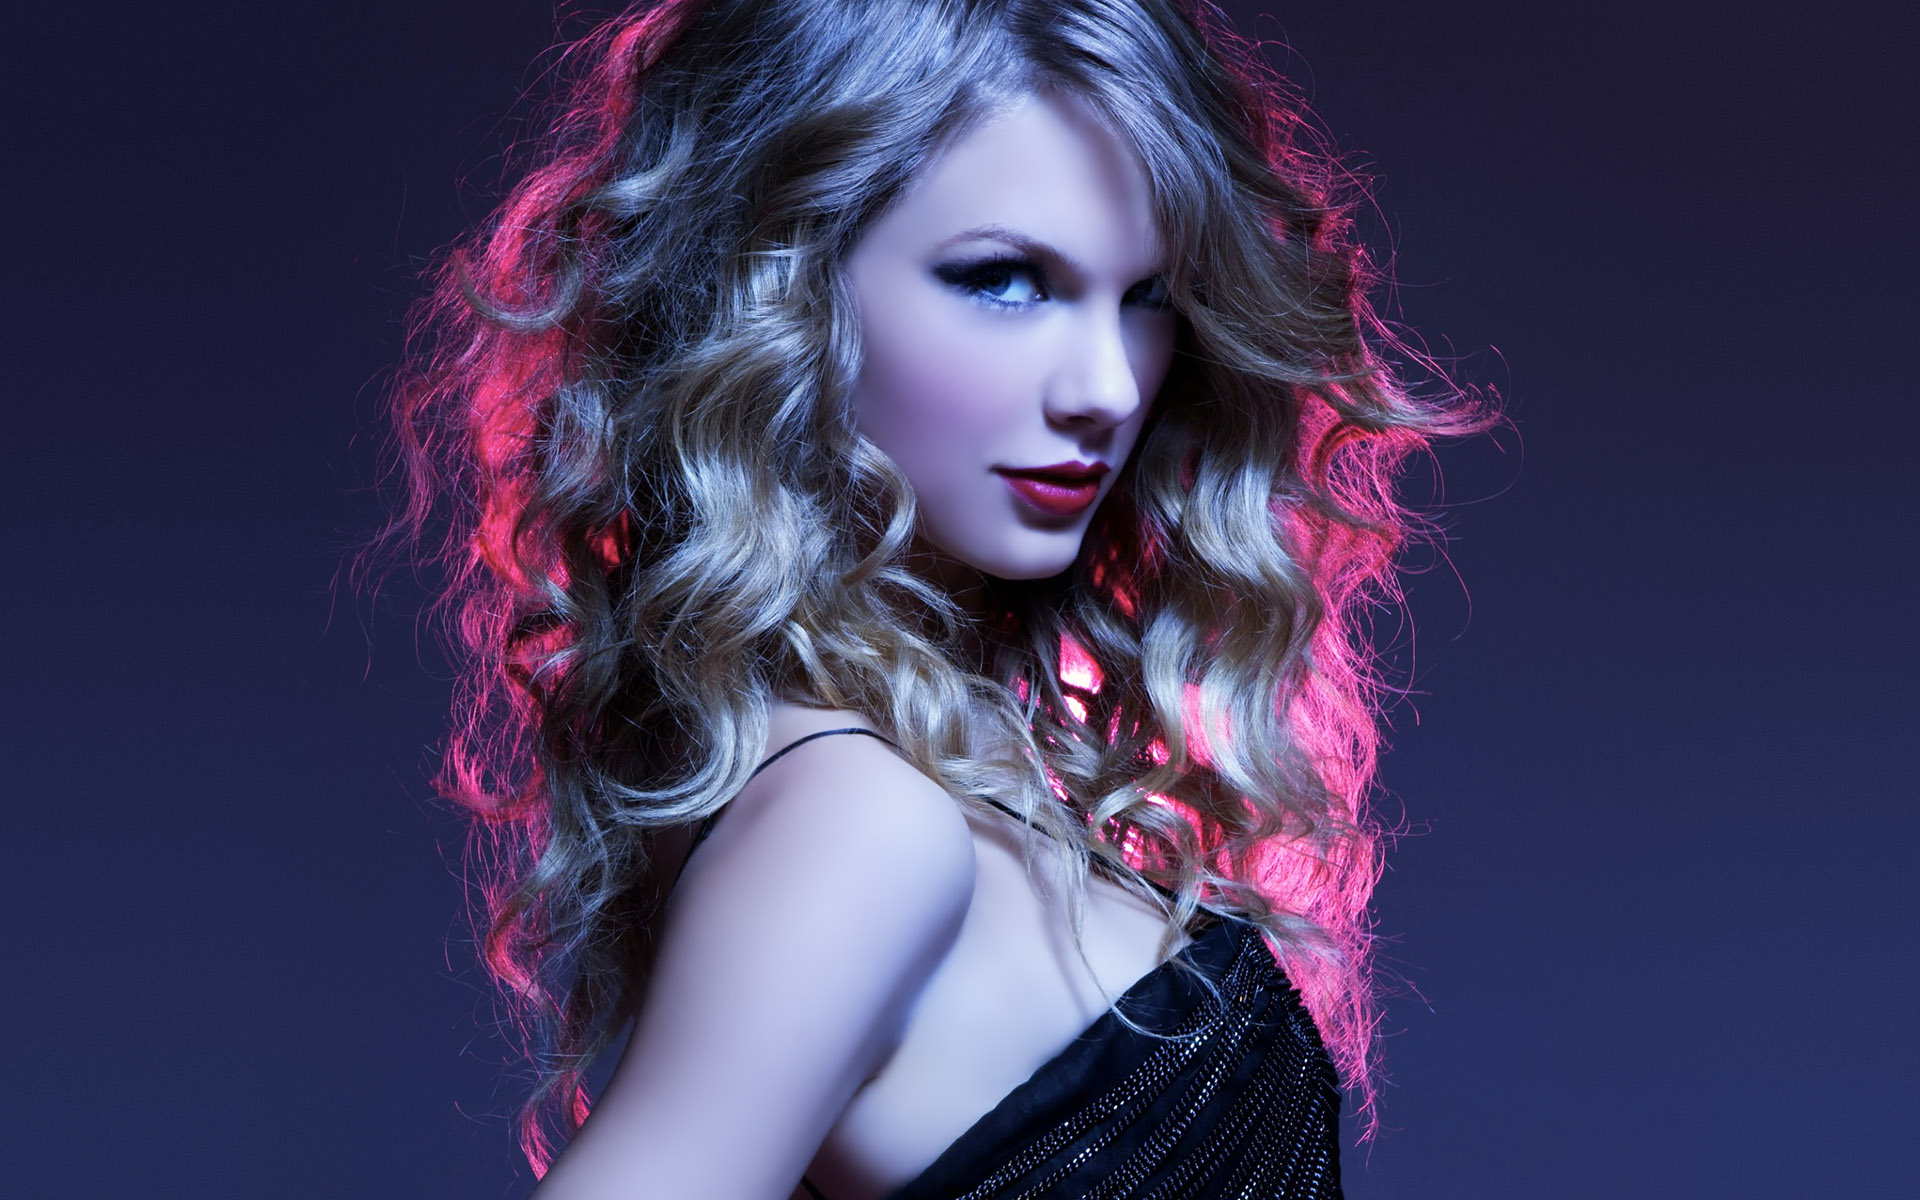 taylor swift styletaylor swift - blank space, taylor swift - shake it off, taylor swift bad blood, taylor swift style, taylor swift shake it off скачать, taylor swift - blank space перевод, taylor swift zayn, taylor swift wildest dreams, taylor swift песни, taylor swift 1989, taylor swift blank space скачать, taylor swift bad blood скачать, taylor swift love story, taylor swift - shake it off перевод, taylor swift mp3, taylor swift 22, taylor swift 2017, taylor swift vk, taylor swift welcome to new york, taylor swift blank space lyrics